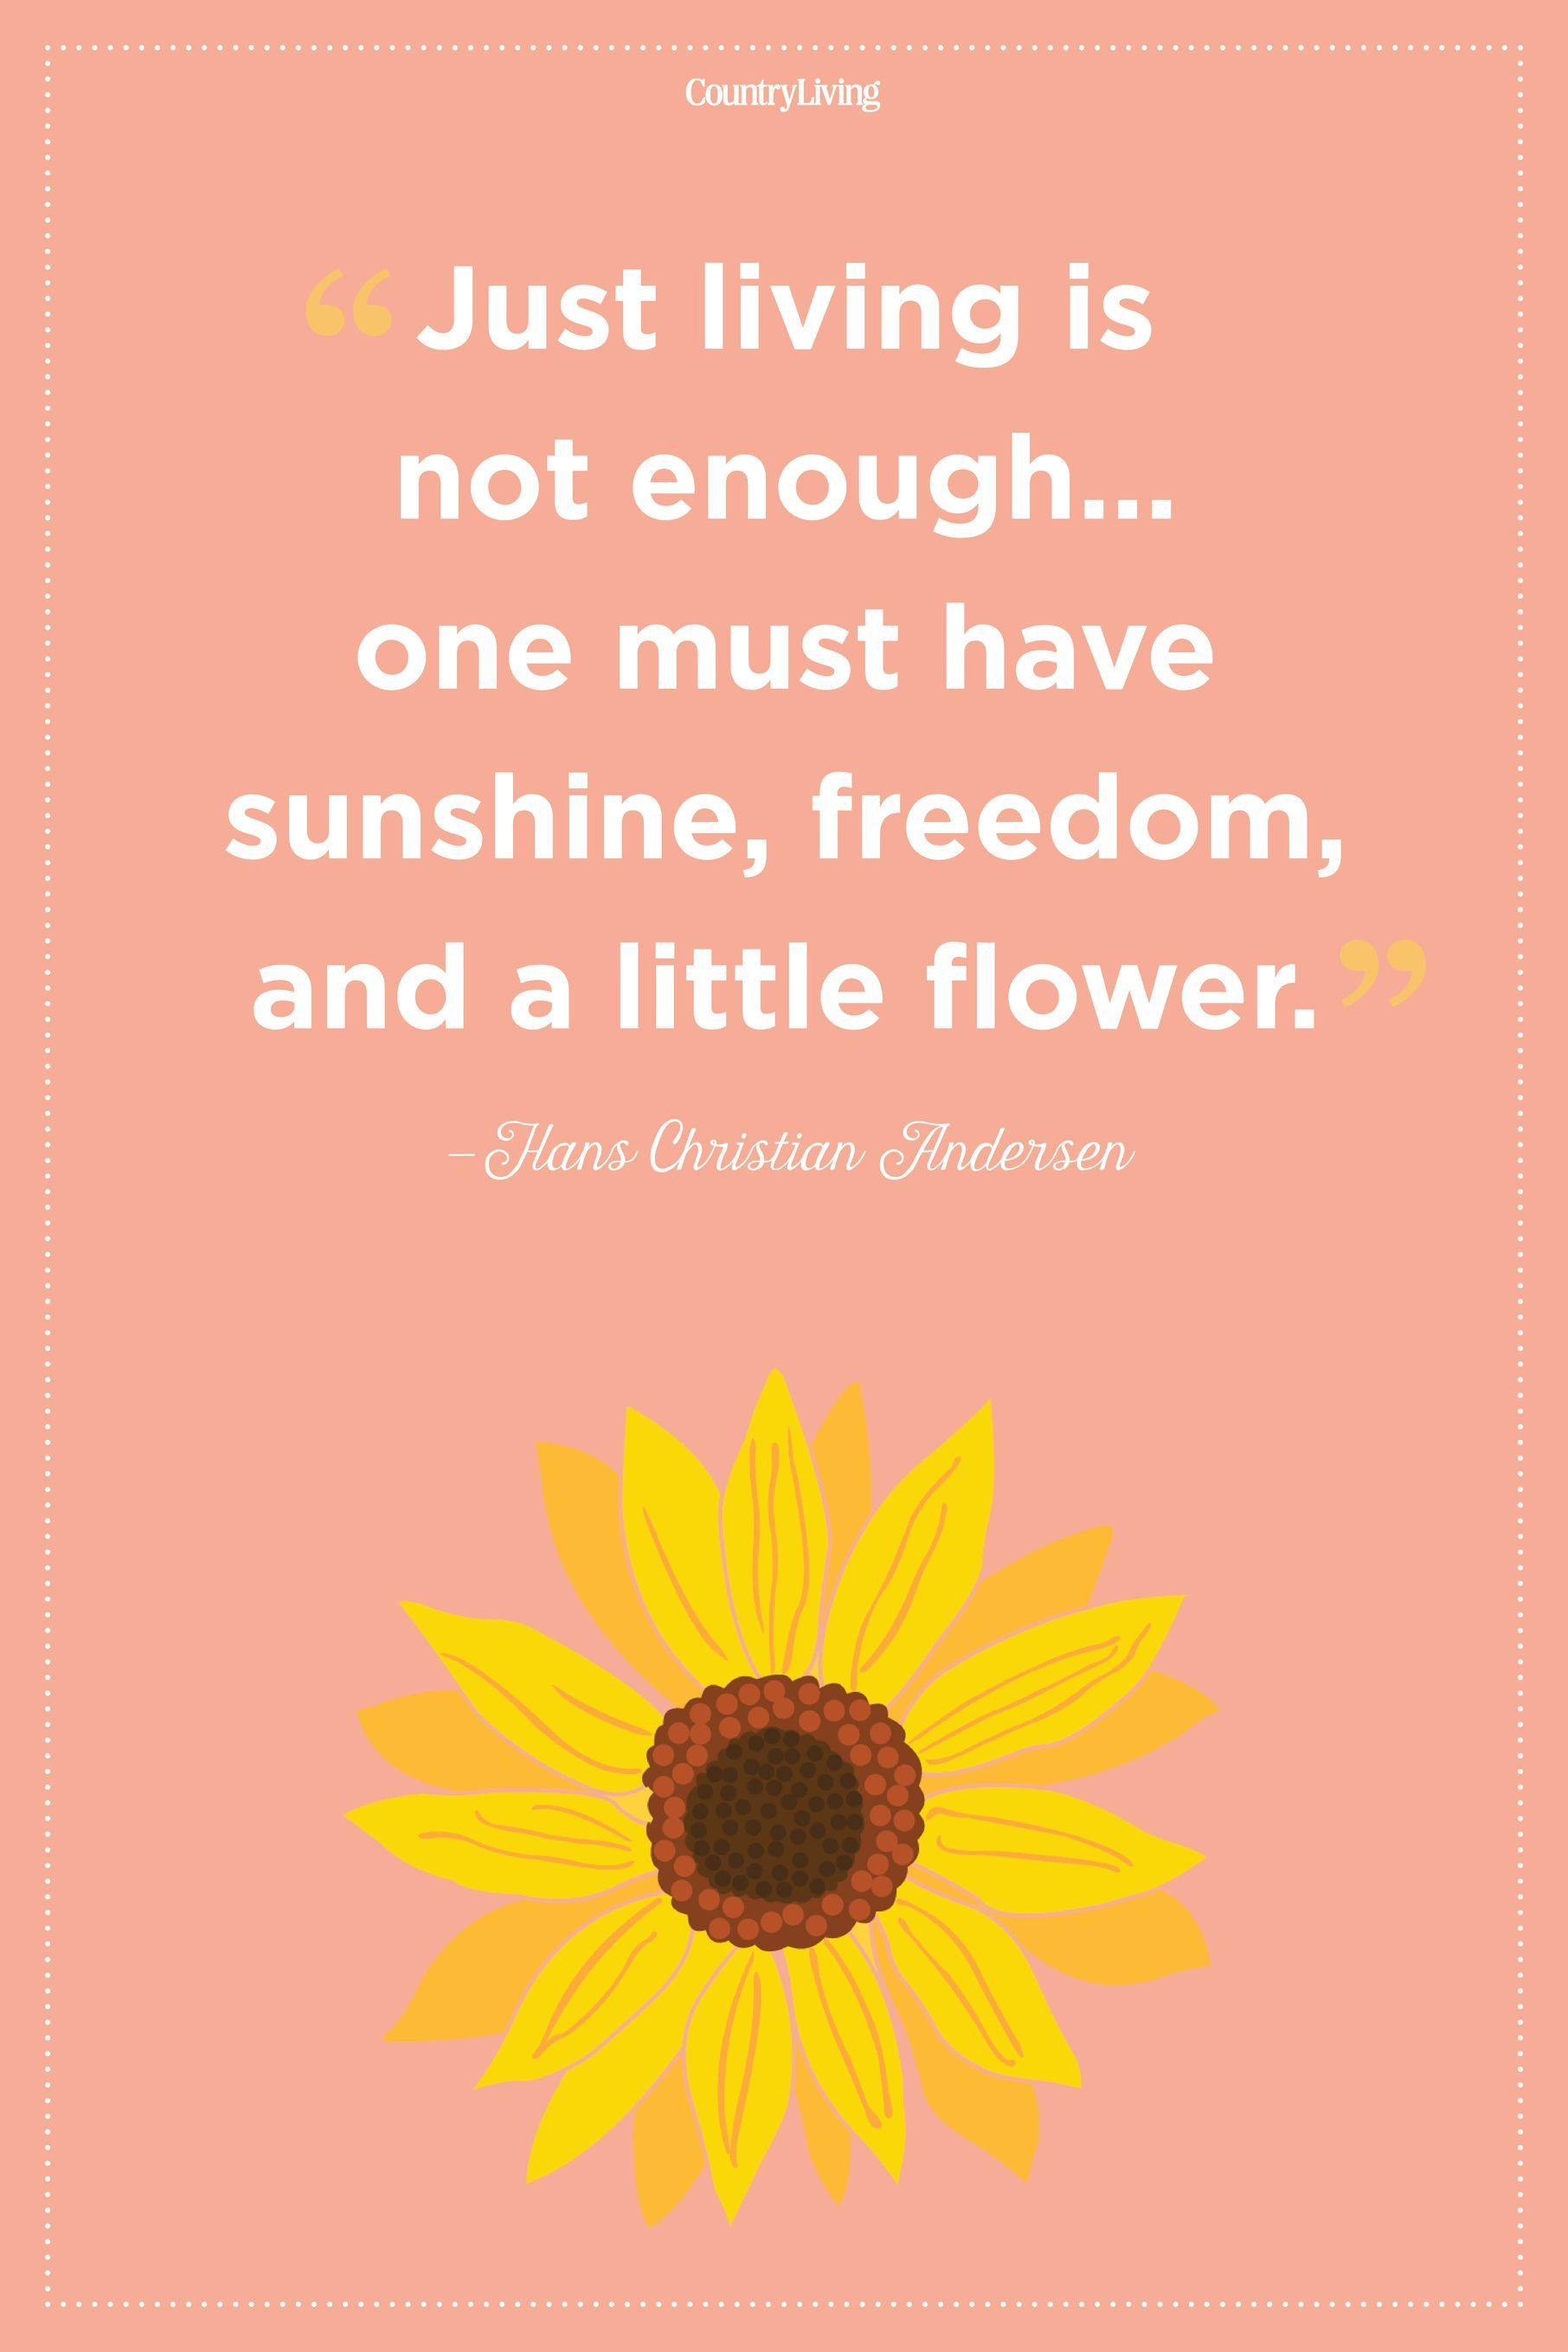 Flower Quotes To Inspire Growth Flower Quotes Inspirational Flower Quotes Love Flower Quotes